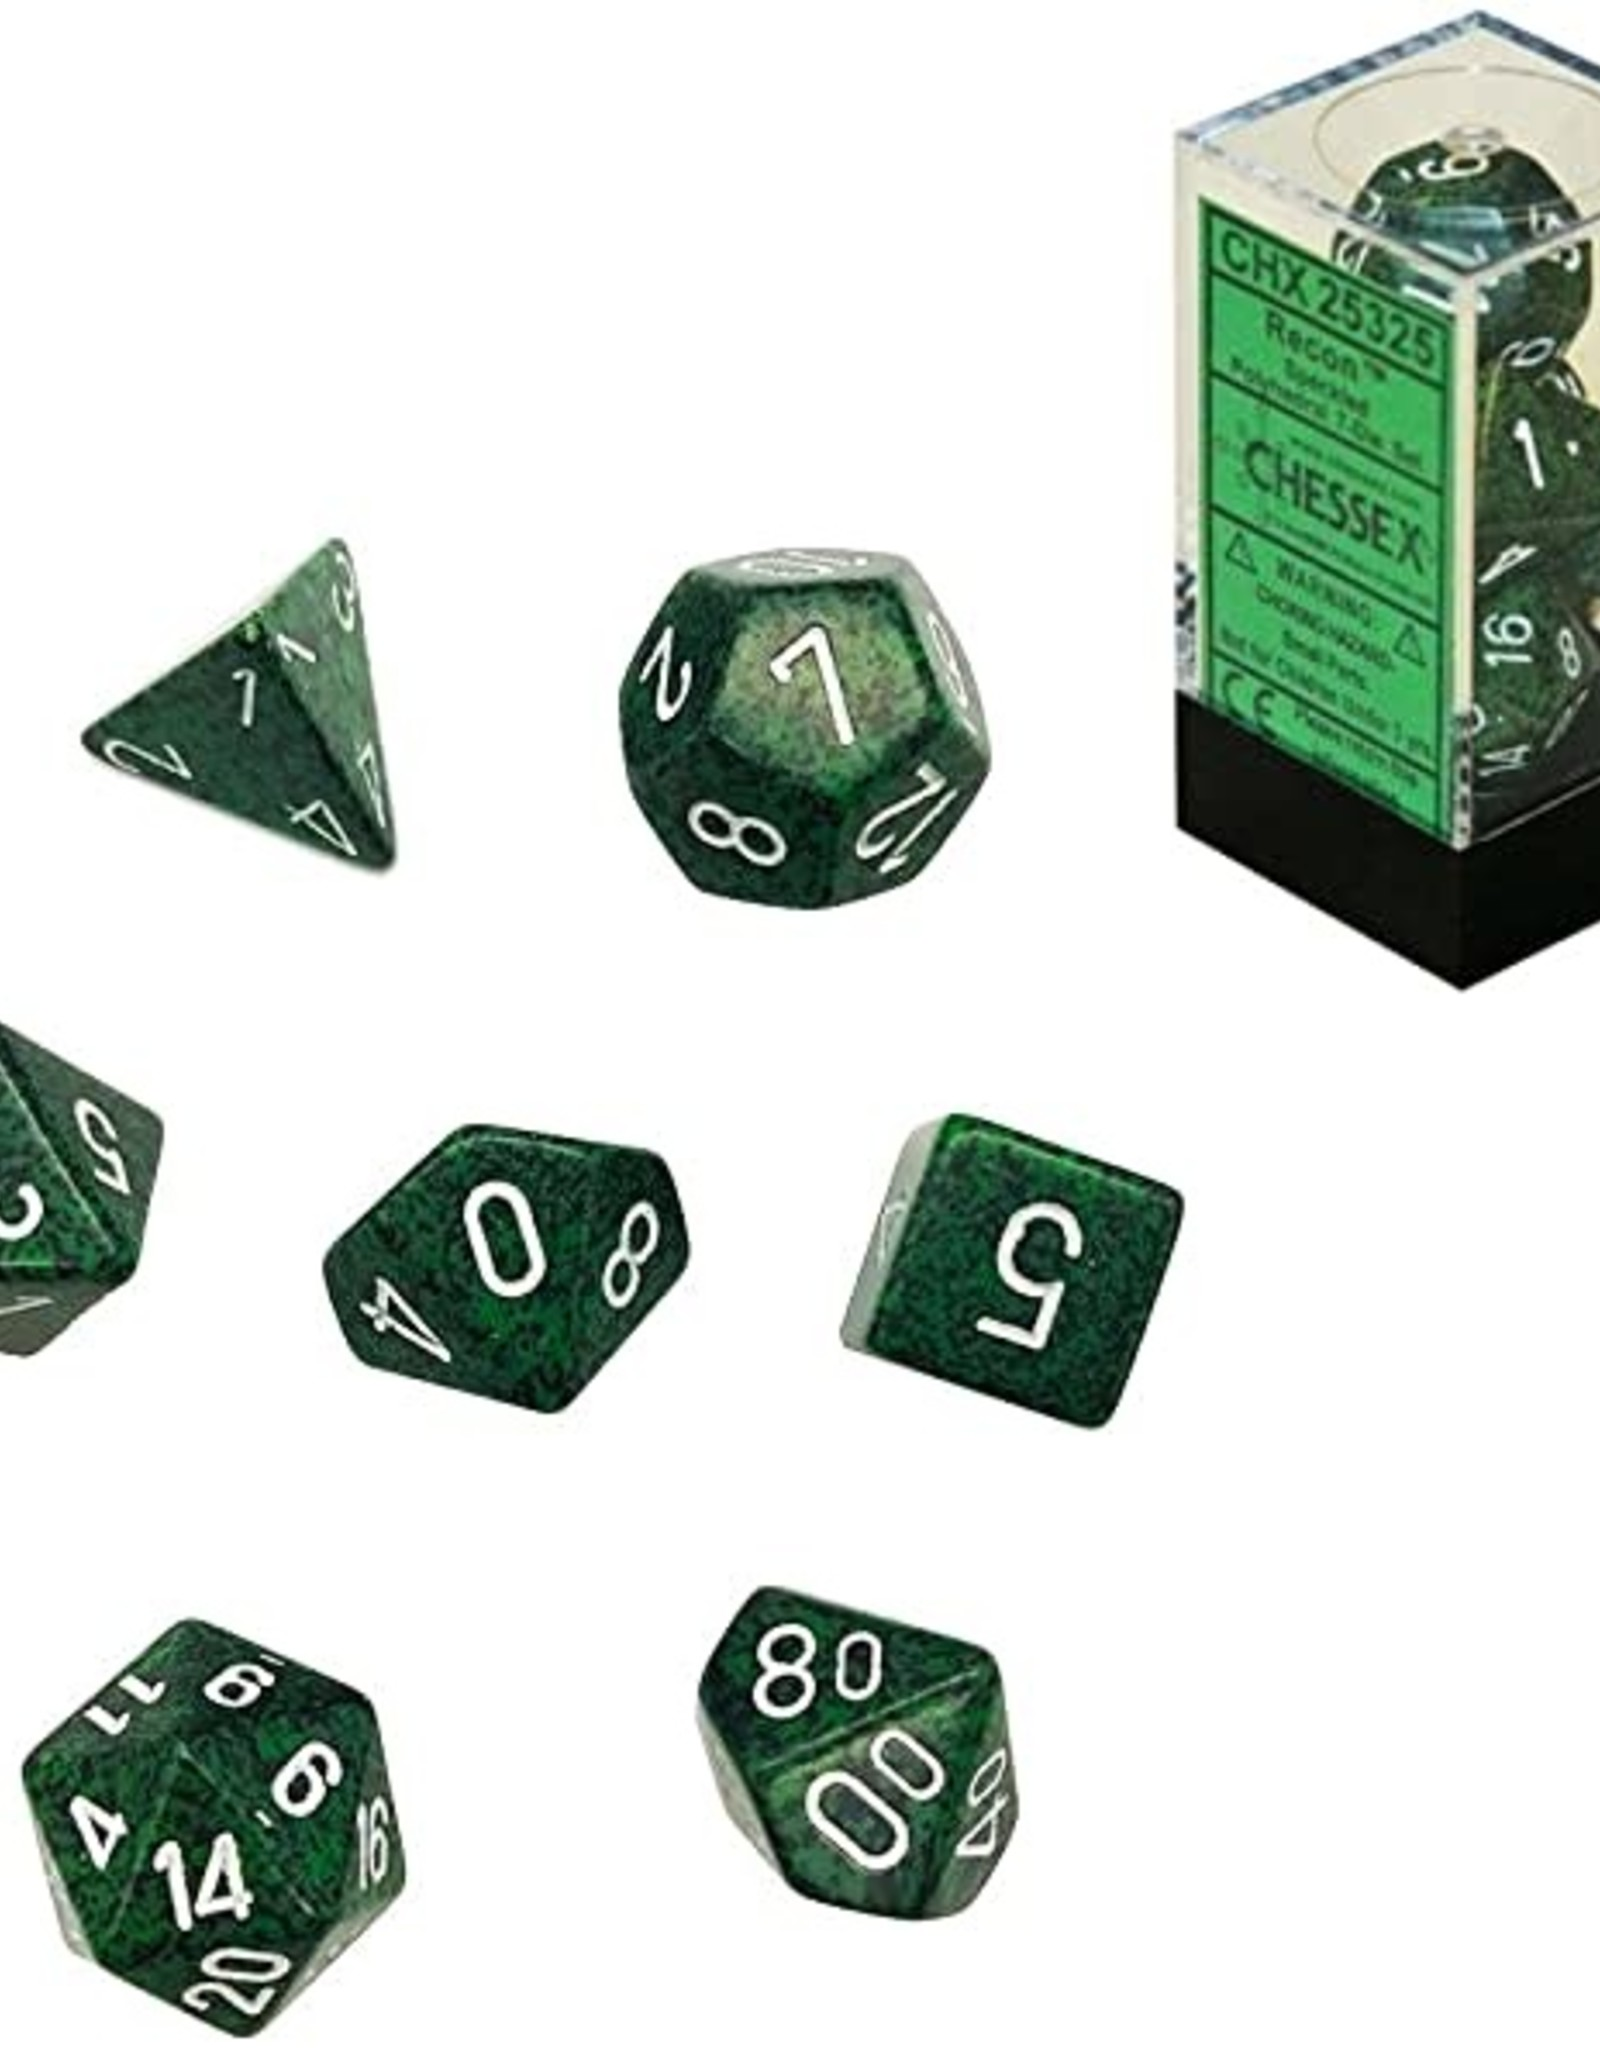 Chessex Chessex CHX25325 Dice - Speckled: 7Pc Recon